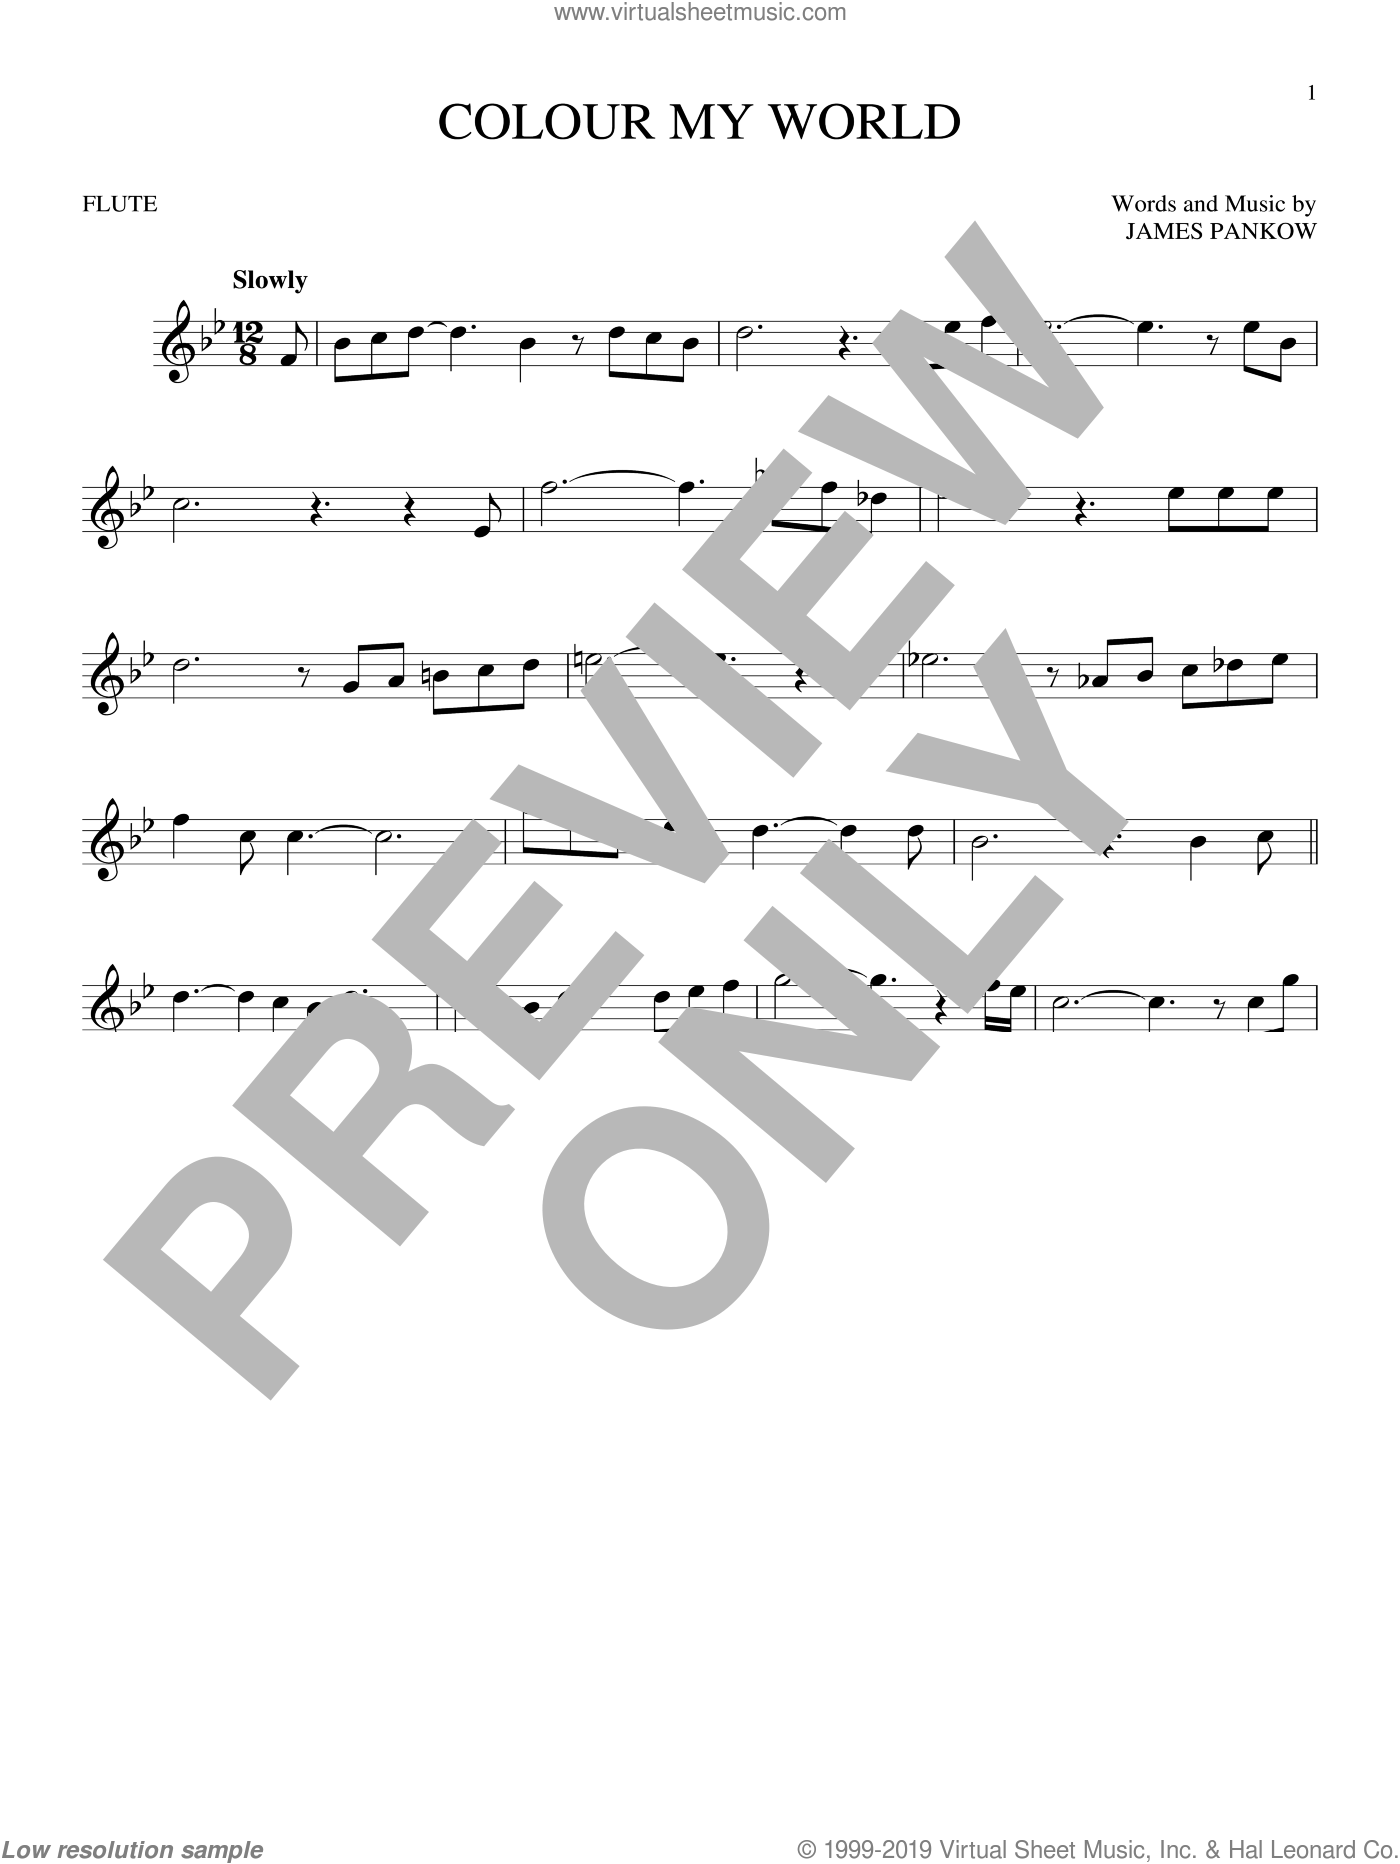 Chicago - Colour My World sheet music for flute solo [PDF]